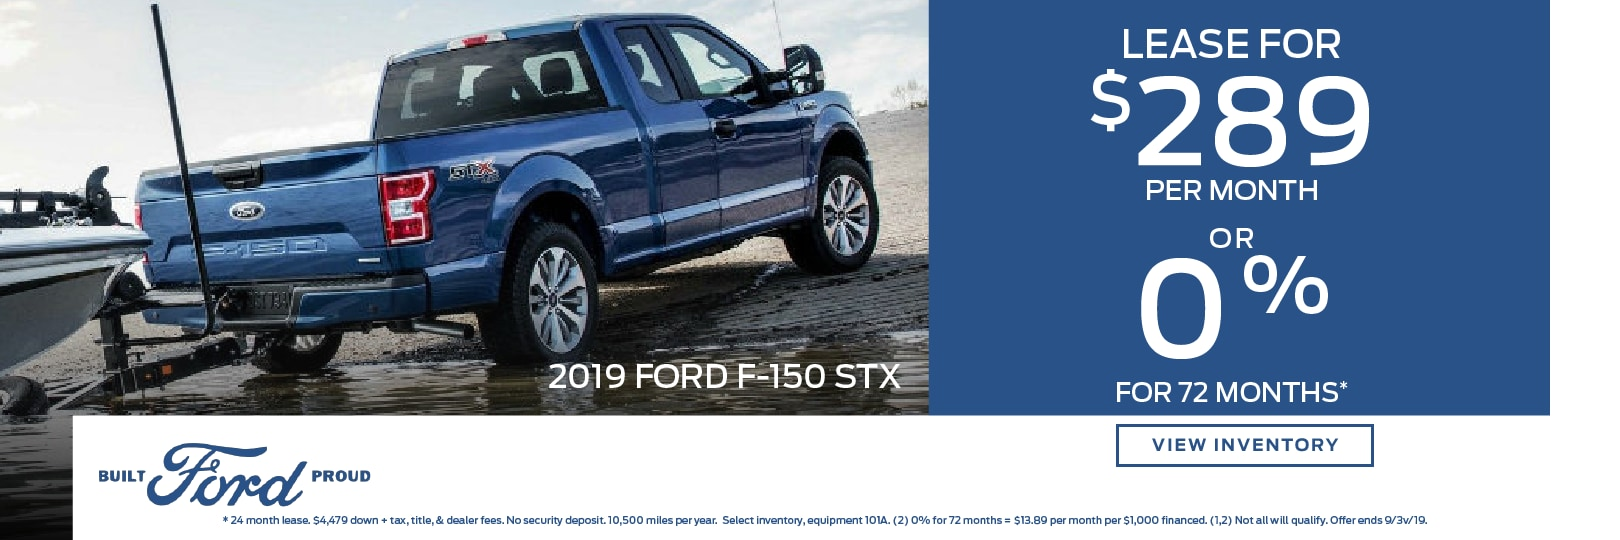 New Ford & Used Car Dealer in Rockford, IL near Belvidere